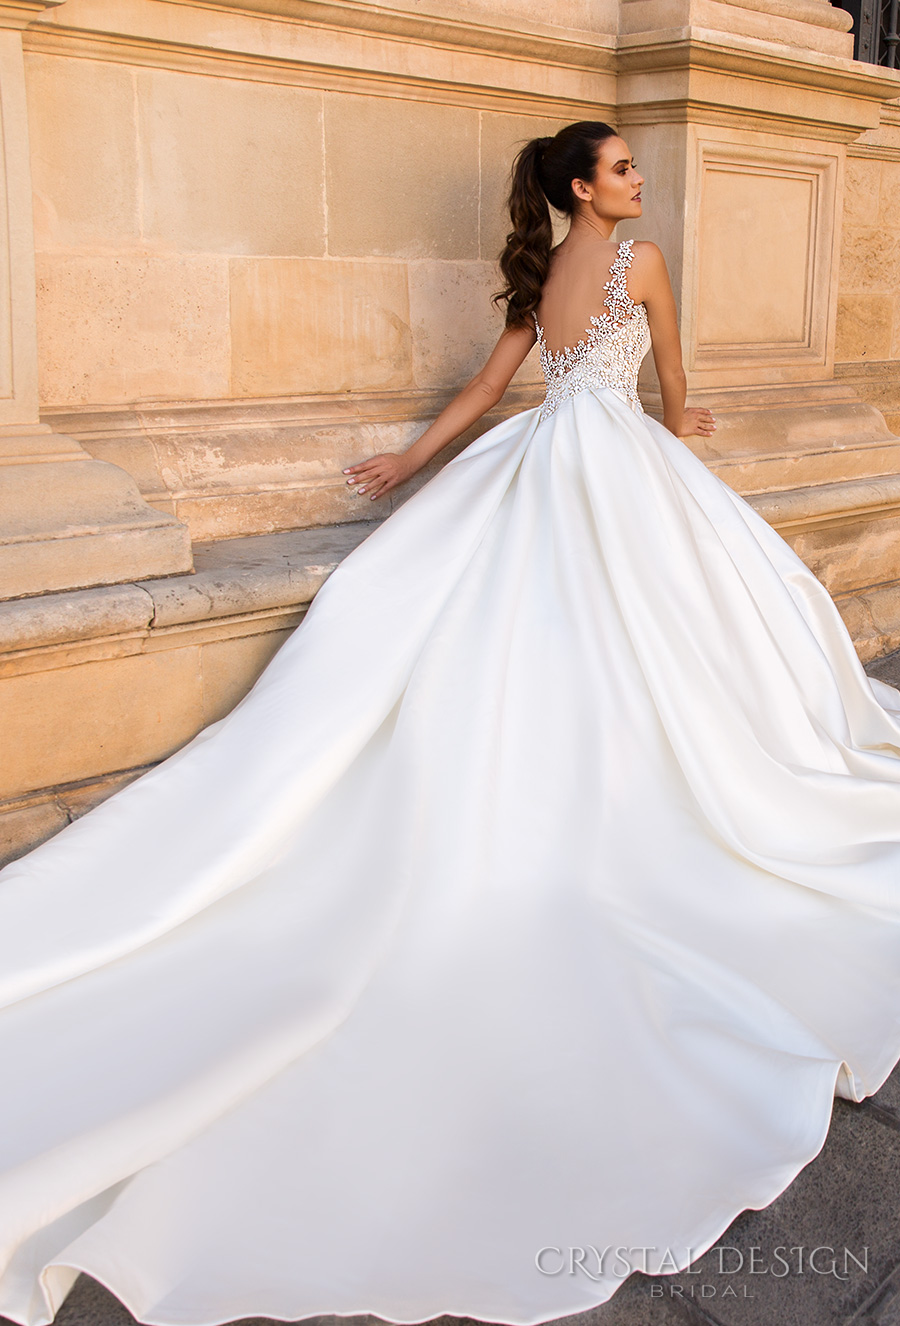 f54f425e236 crystal design 2017 bridal sleeveless jewel sweetheart neckline heavily  embellished bodice beaded simple ball gown a line wedding dress open back  royal ...